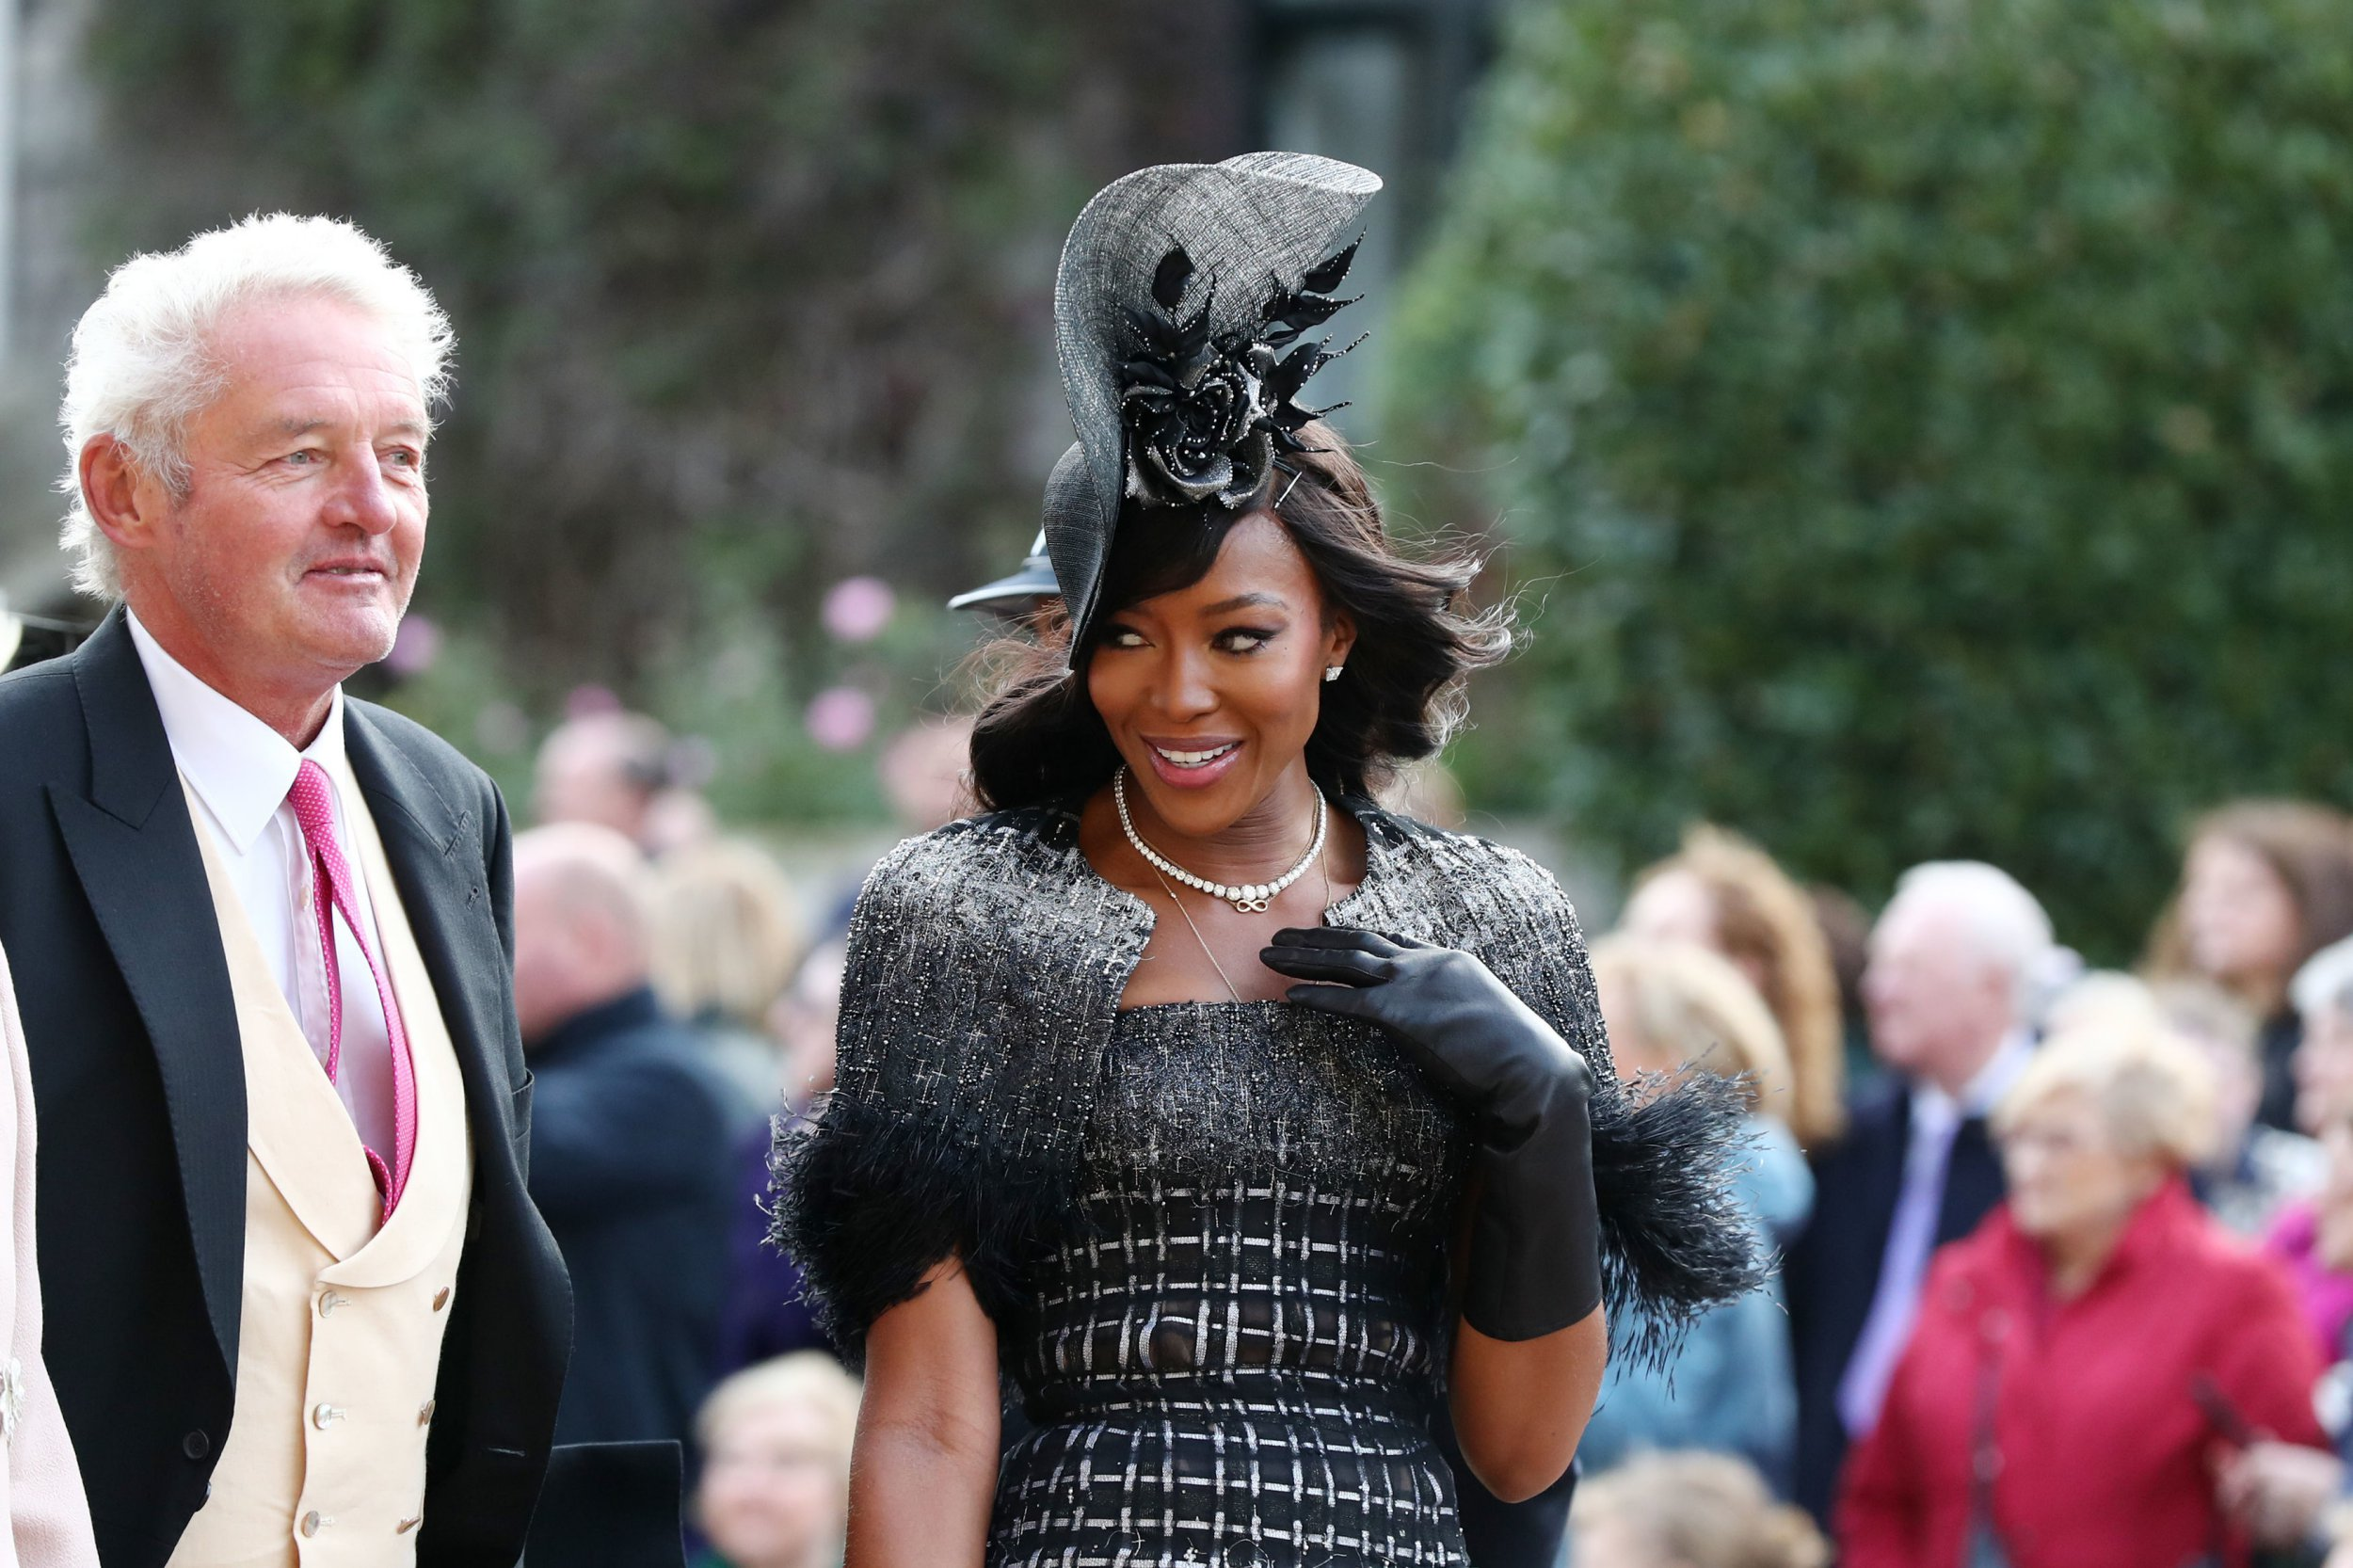 Naomi Campbell arrives ahead of the wedding of Princess Eugenie to Jack Brooksbank at St George's Chapel in Windsor Castle. PRESS ASSOCIATION Photo. Picture date: Friday October 12, 2018. See PA story ROYAL Wedding. Photo credit should read: Gareth Fuller/PA Wire